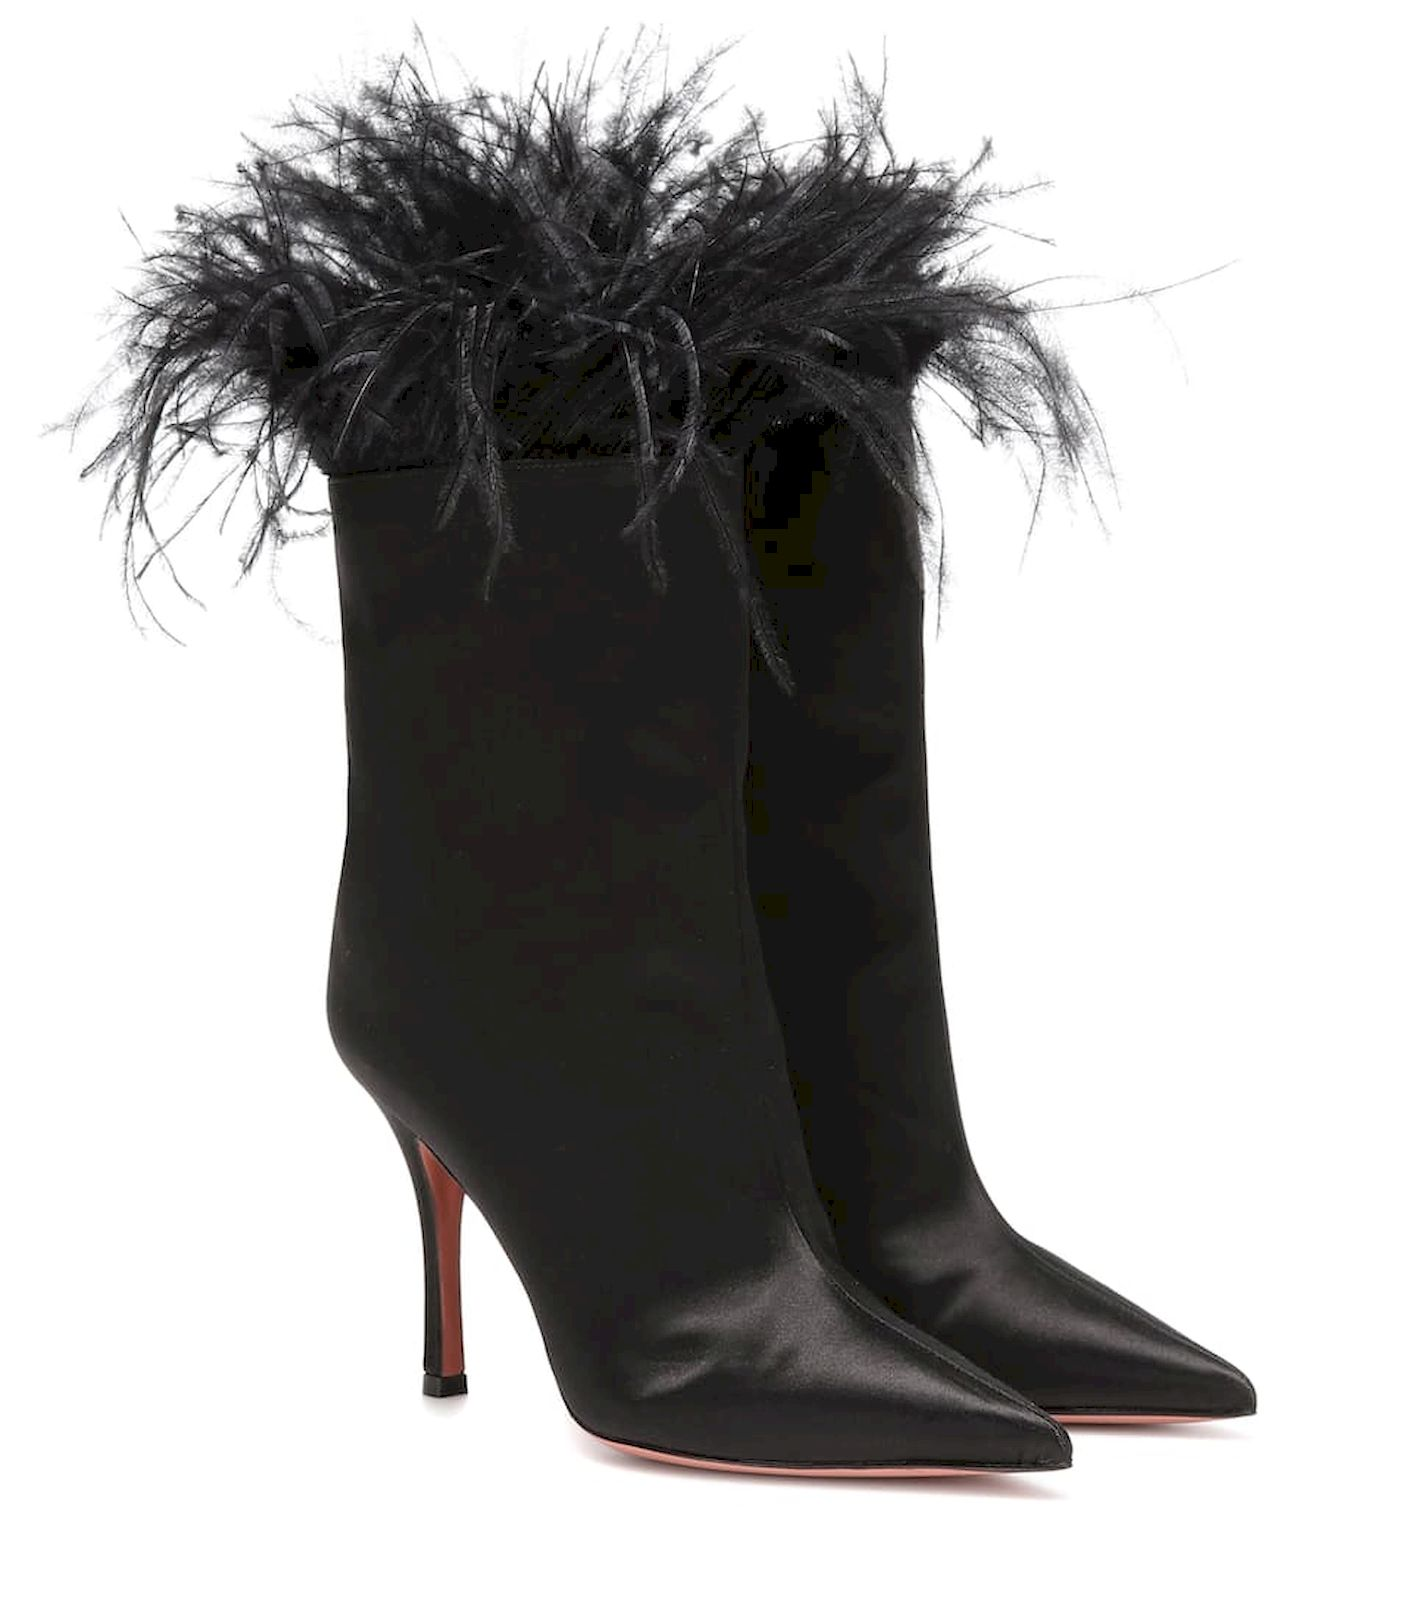 Amina Muaddi Nakia feather-trimmed ankle boots, $1,289, www.mytheresa.com